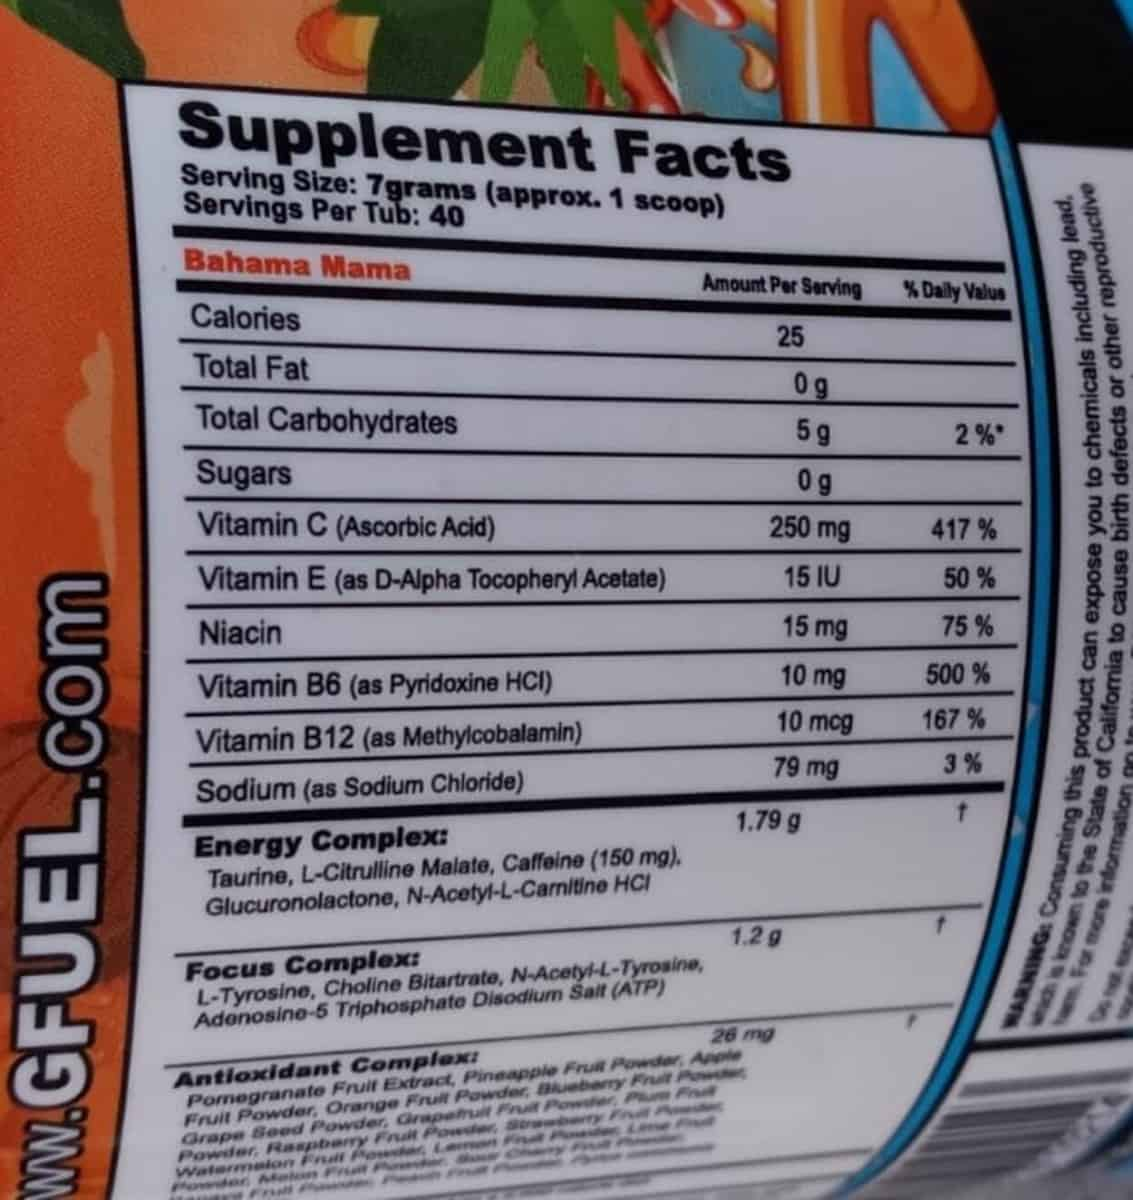 Supplement facts, G Fuel Powder, Label on a tub